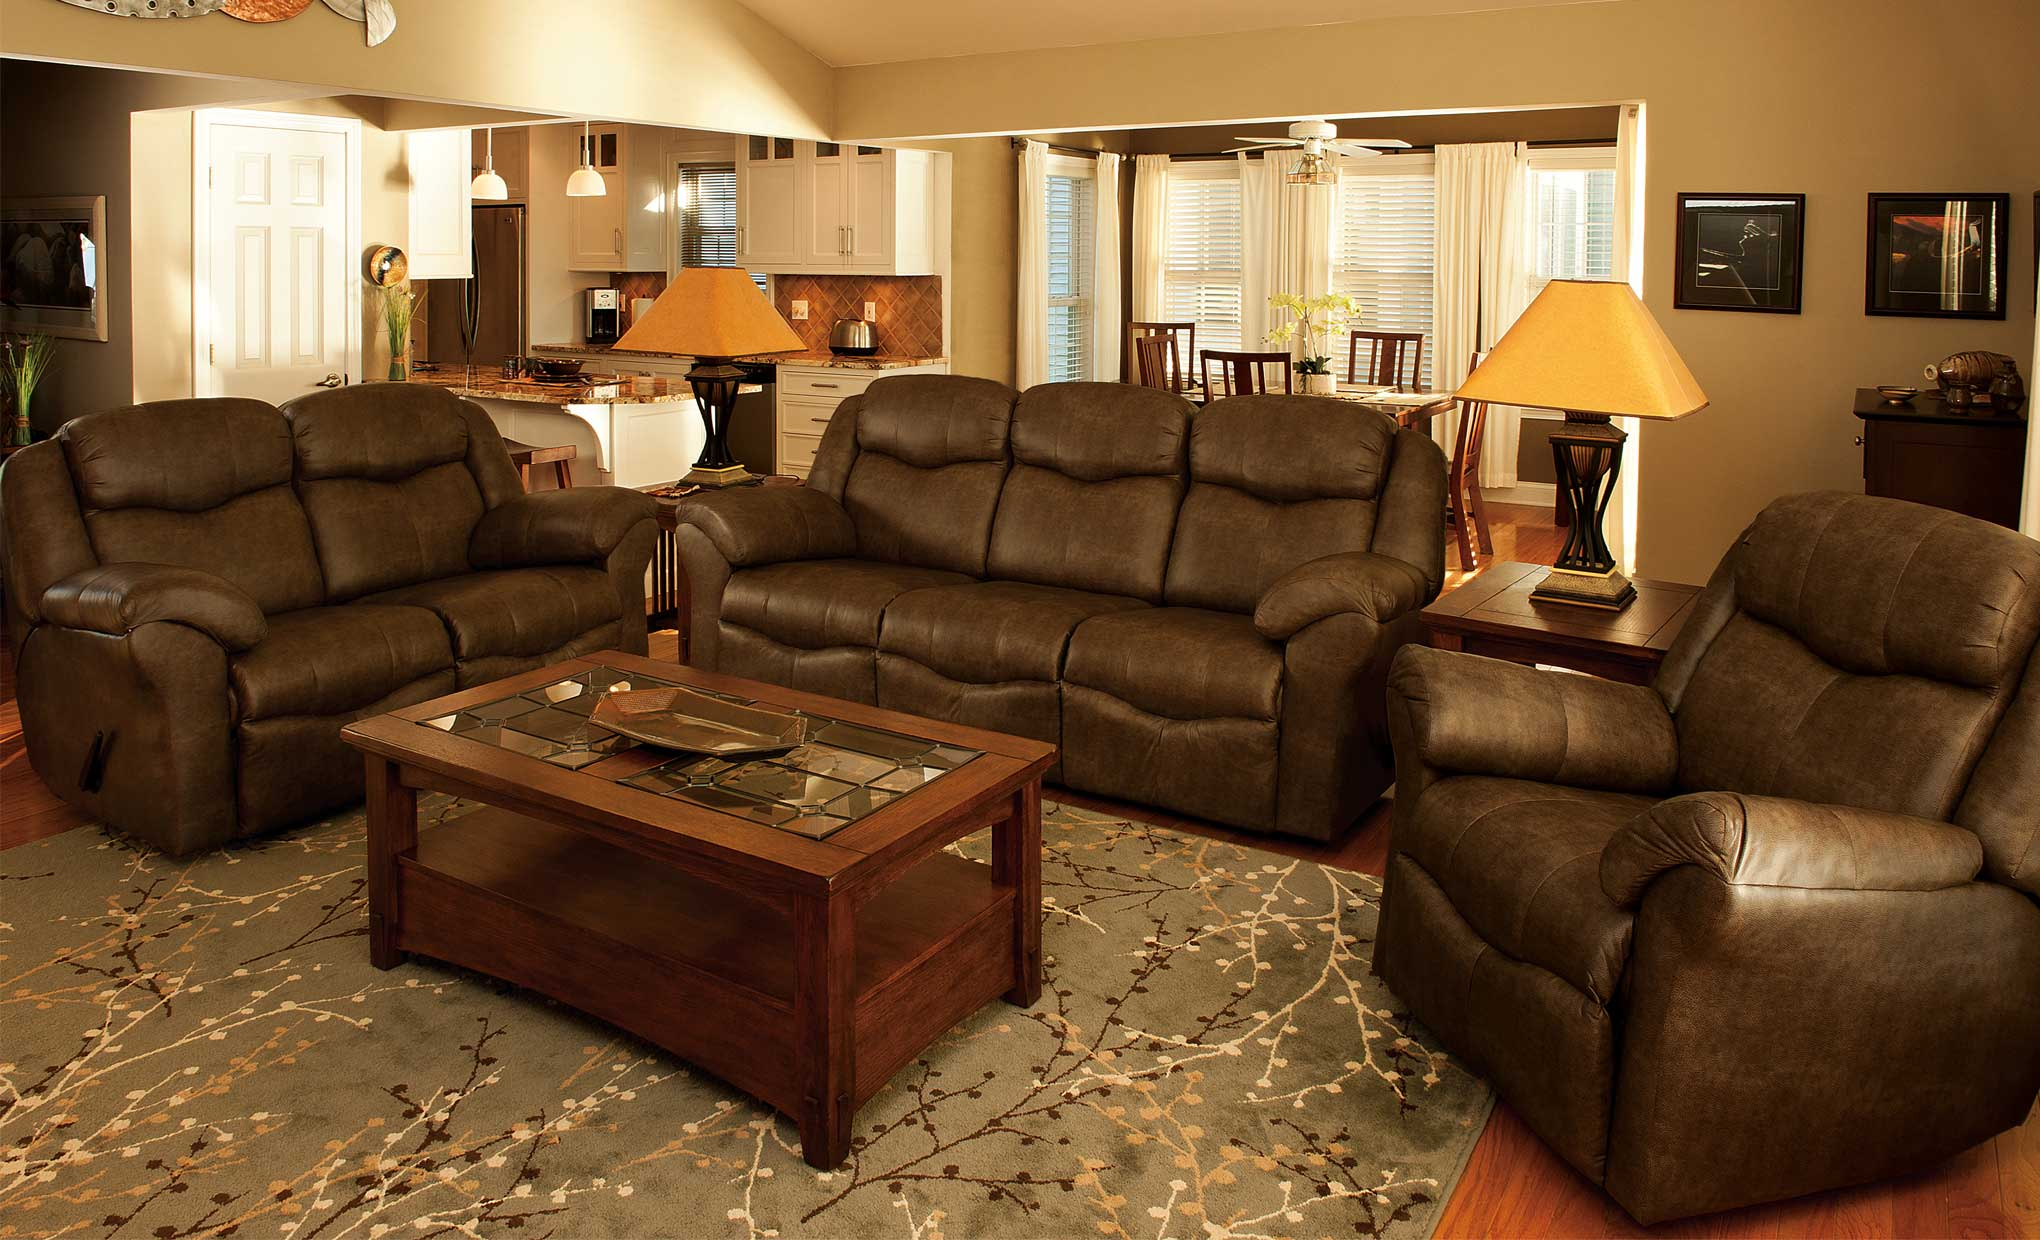 brown modern sale full sensational chesterfield comfort black about s reclining remodel rocker furniture light leather chair for single blue design aherns tufted red real additional original with of on armchair size small recliner mens best swivel comforter bedroom recliners slim armchairs